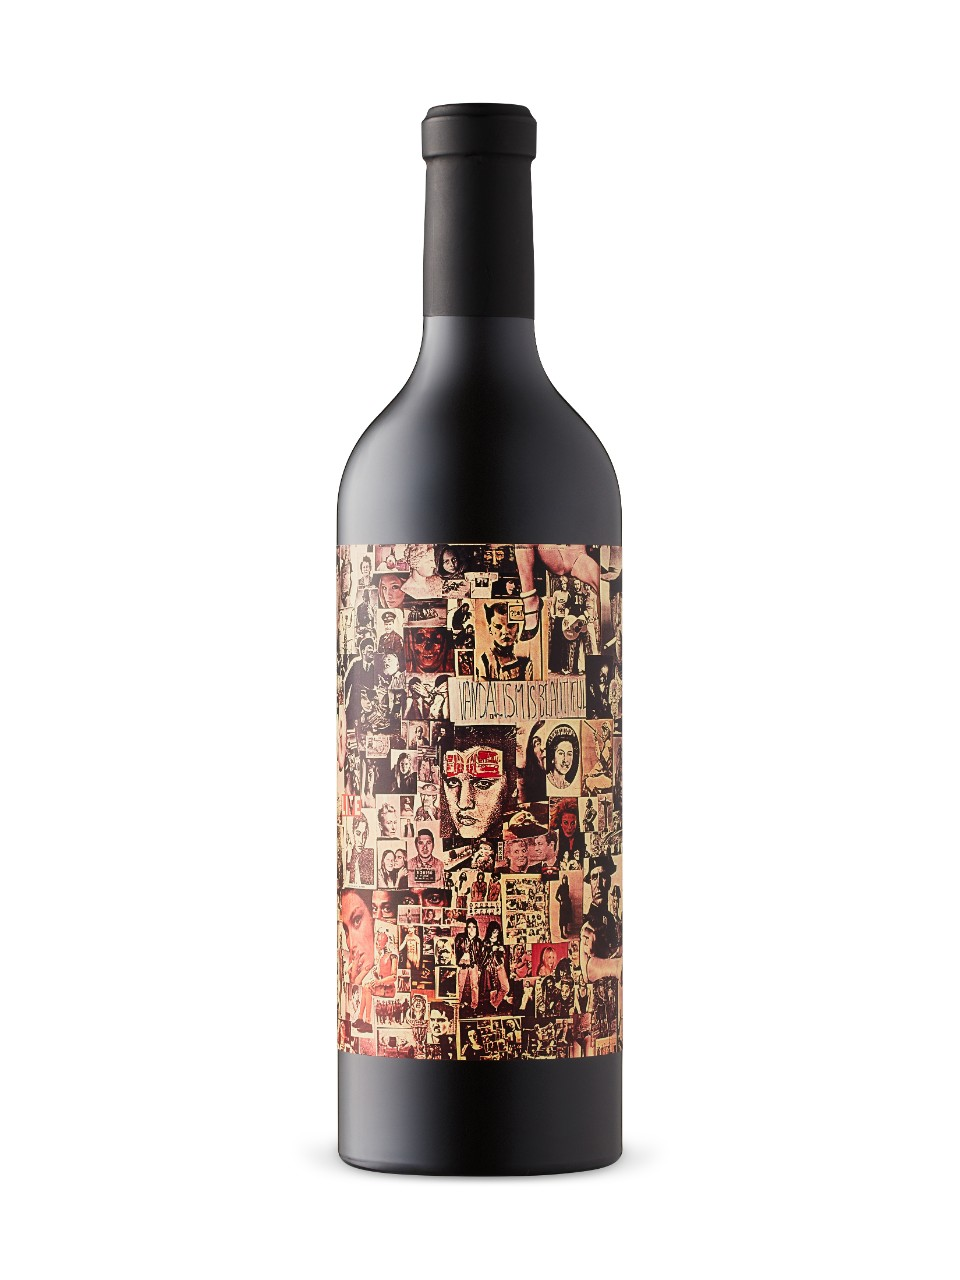 Orin Swift Abstract Grenache Blend 2016